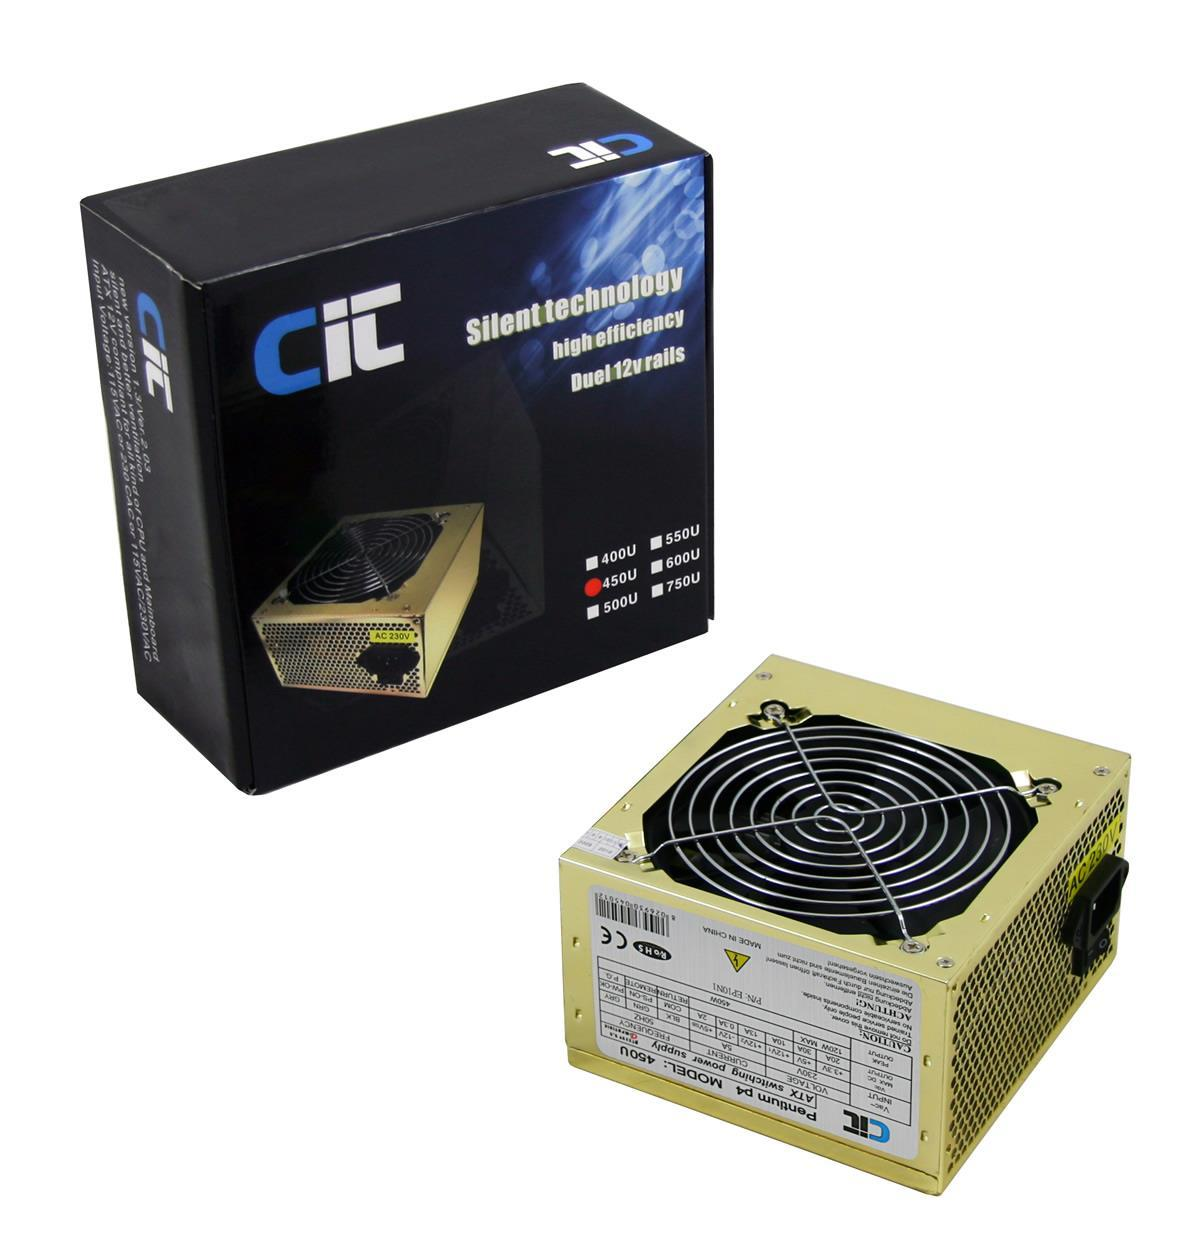 450W CiT Gold PSU with 12cm Silent Fan SATA Power Supply